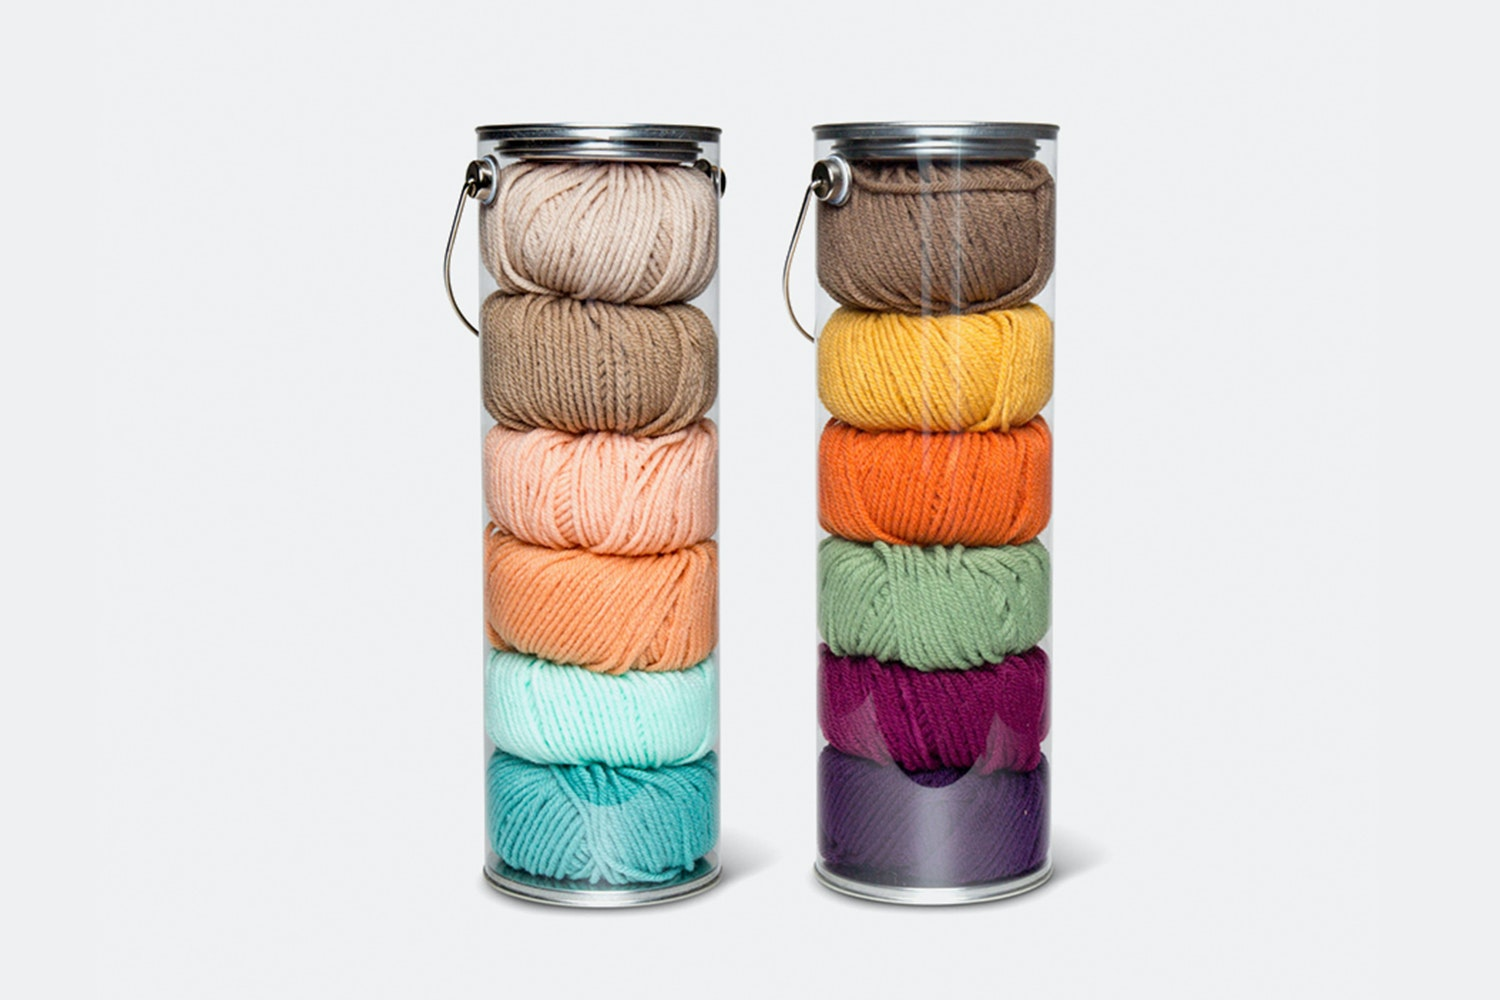 Liberty Craft Cans by Fair Isle | Price & Reviews | Massdrop